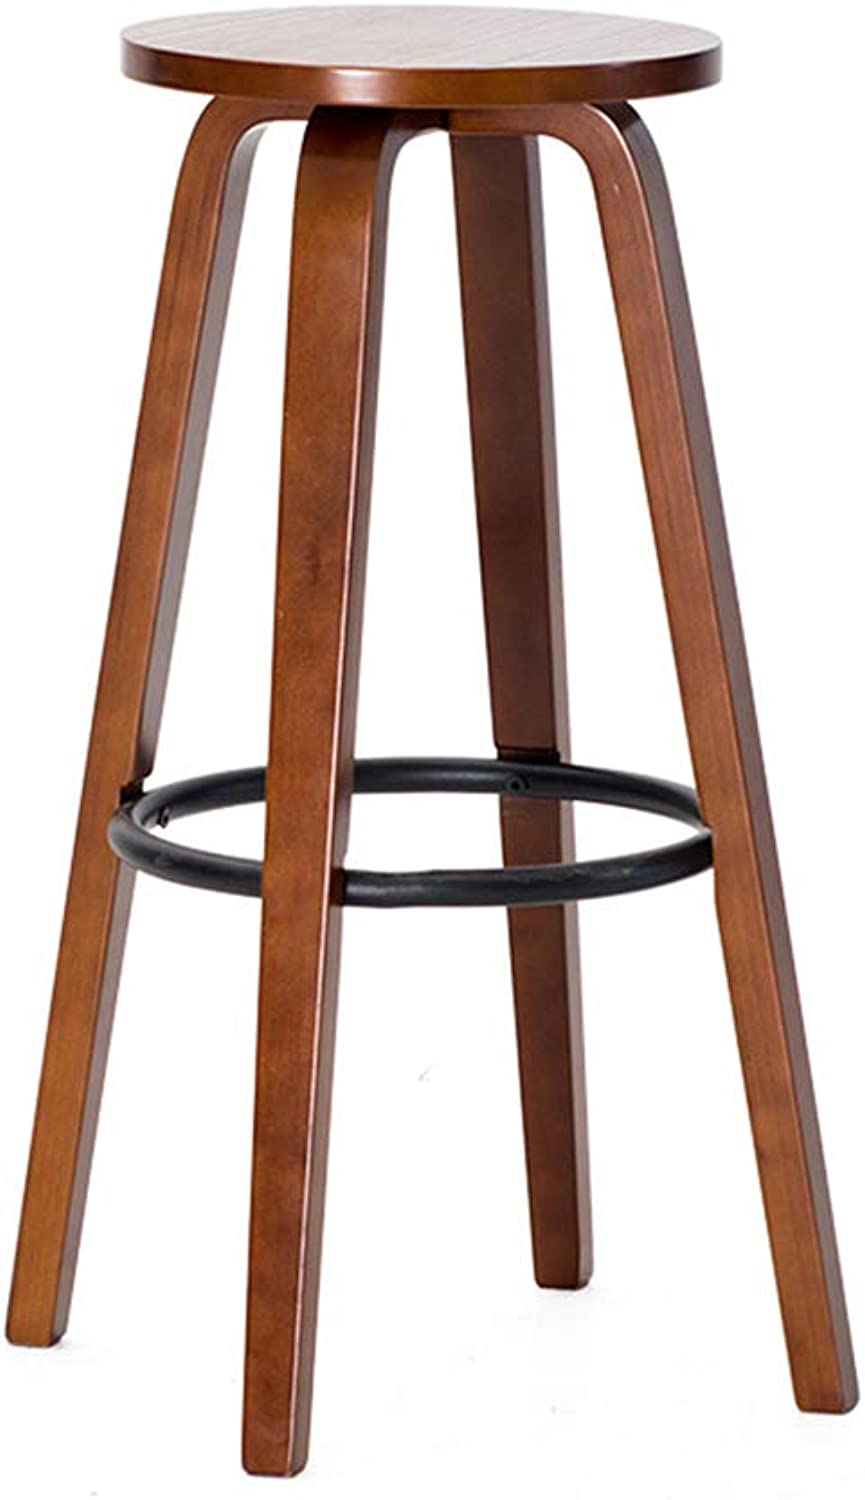 Wood High Stools Cafe High Stools Home Dining Chairs Bar Pub Stools Leisure Modern Nature Nordic Minimalist Large Seats